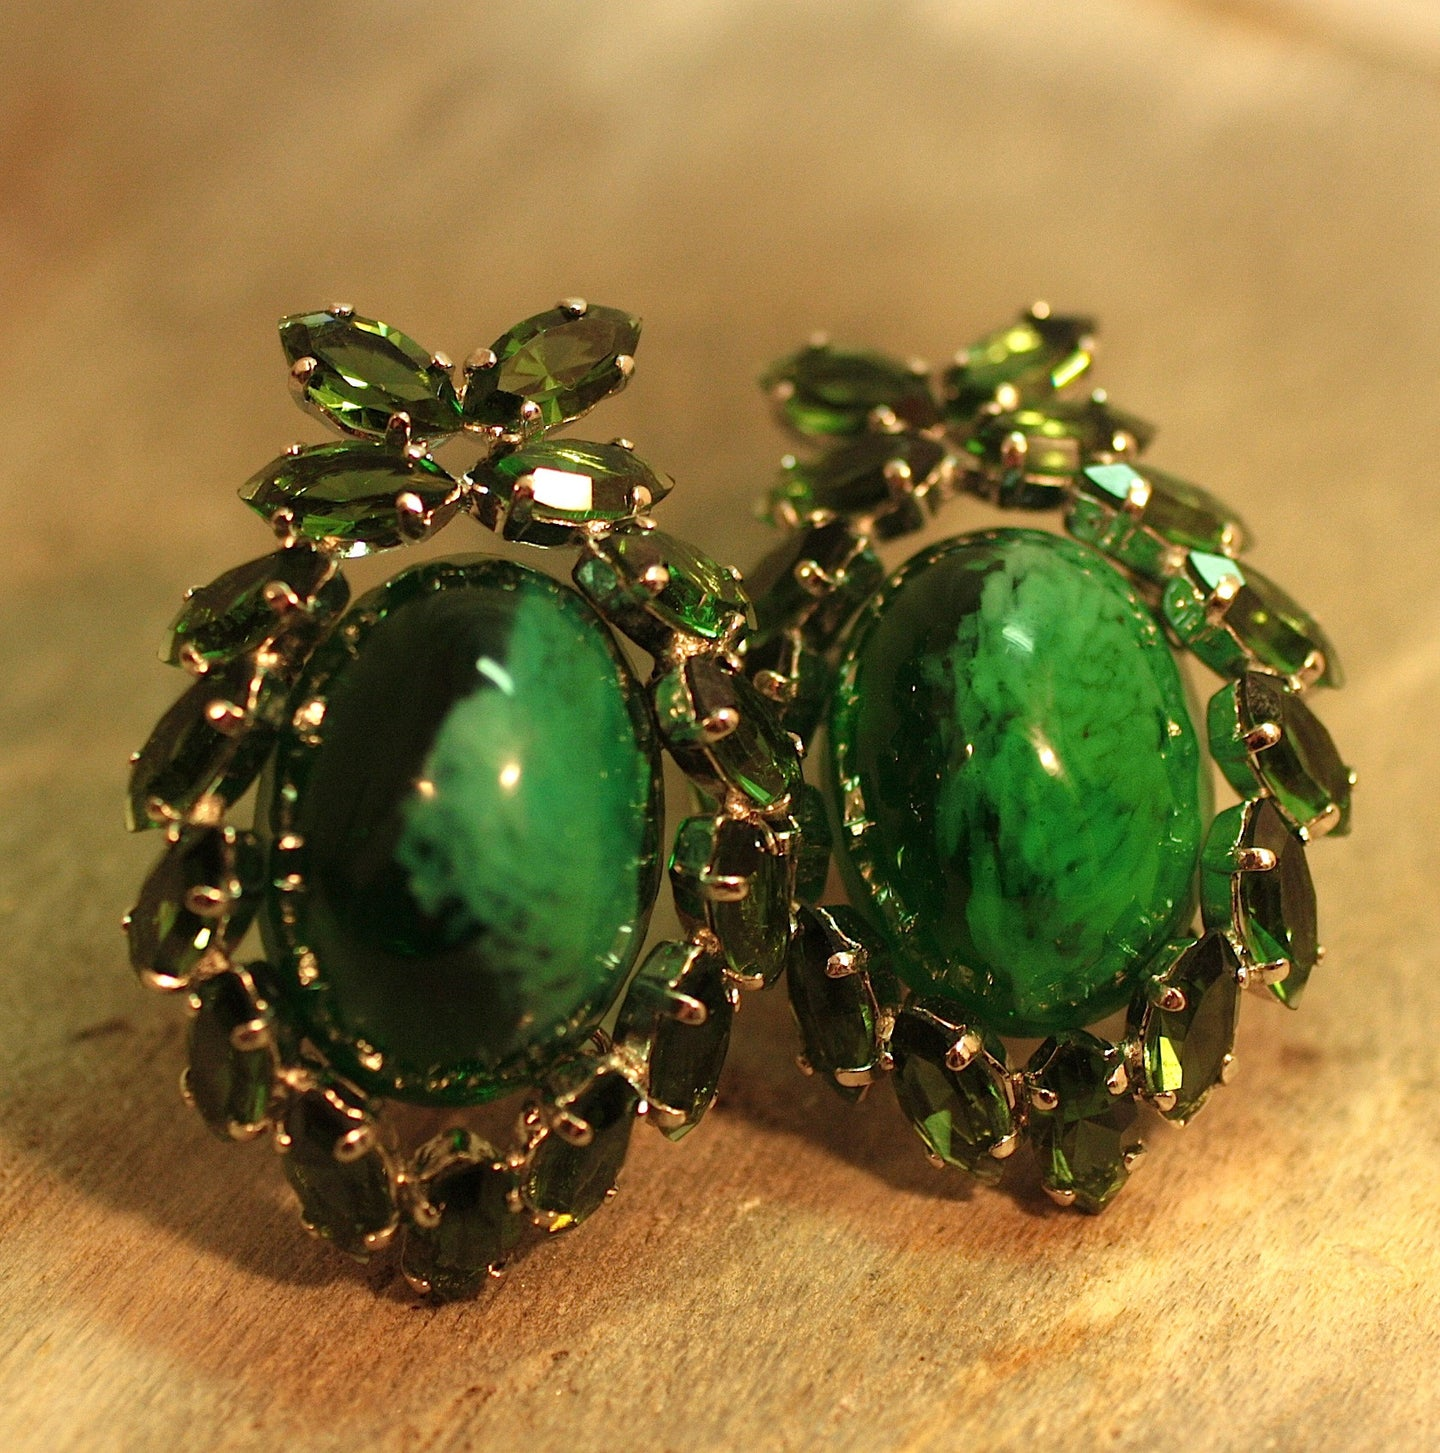 1961 Christian Dior Green Glass Earrings